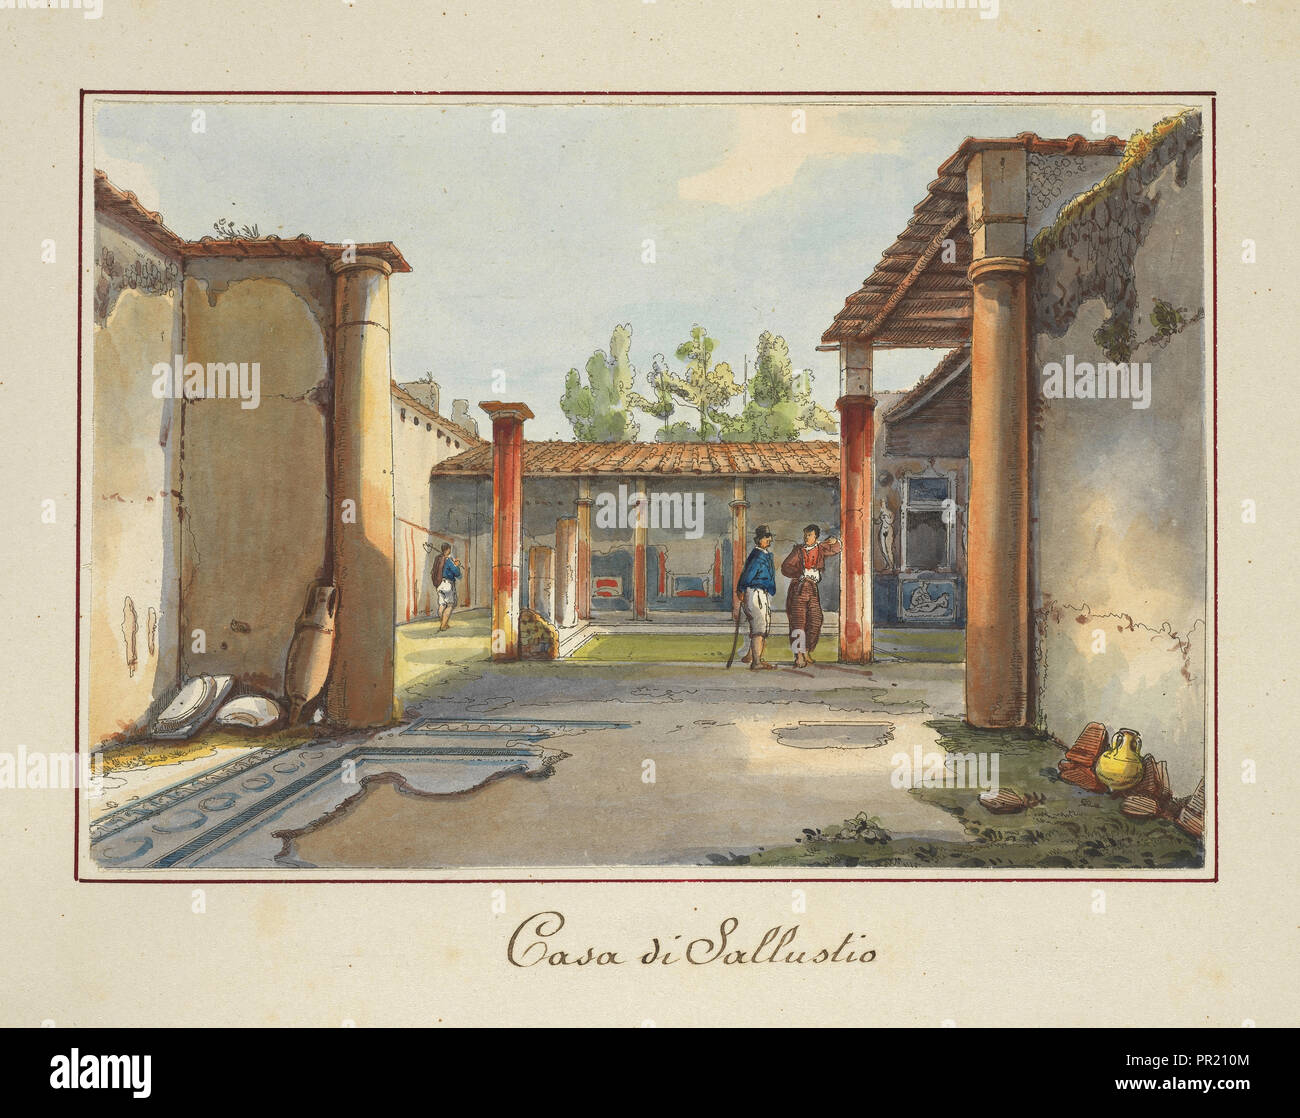 A Casa Di Babette 4 di stock photos & 4 di stock images - alamy